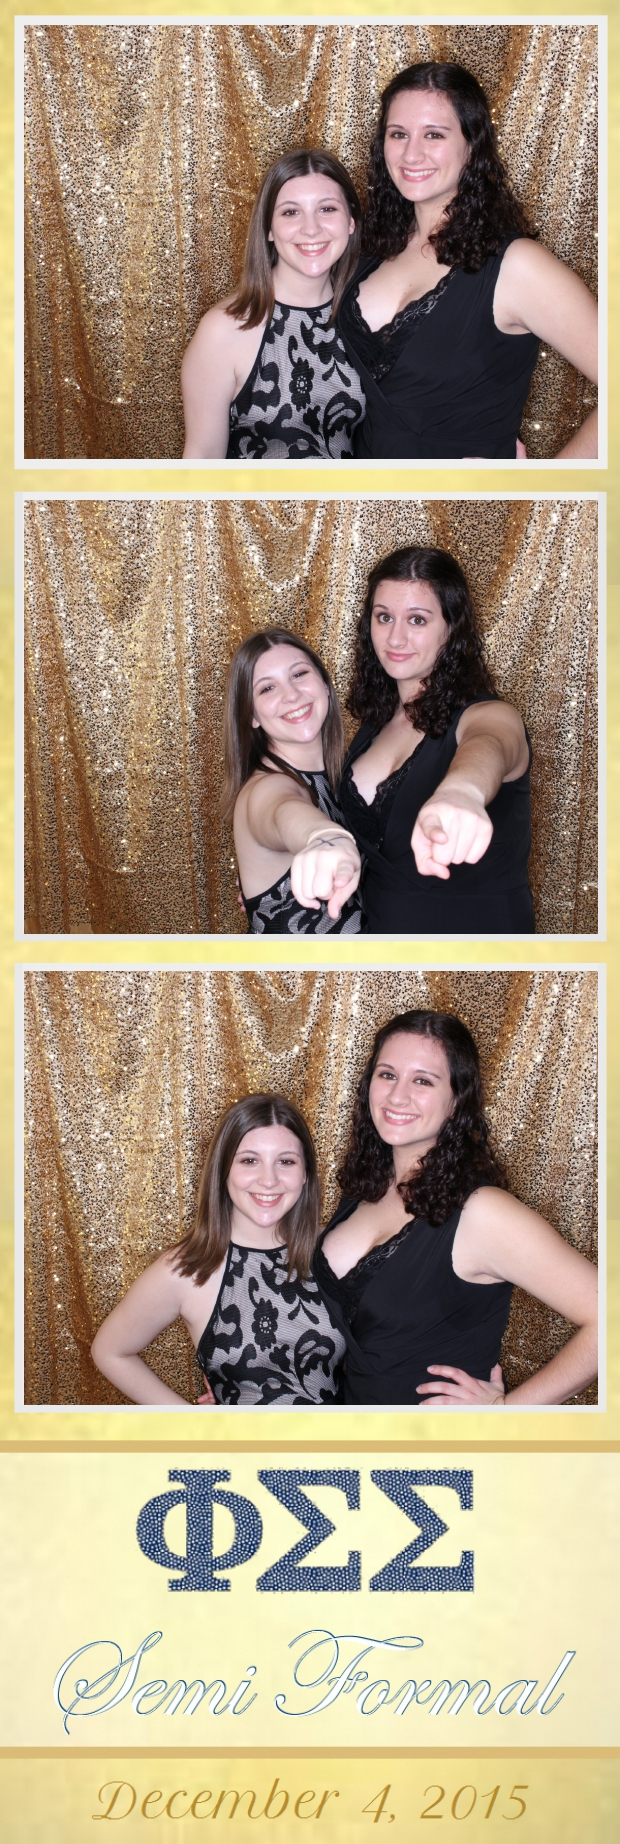 Guest House Events Photo Booth Phi Sigma Sigma Semi Formal (74).jpg